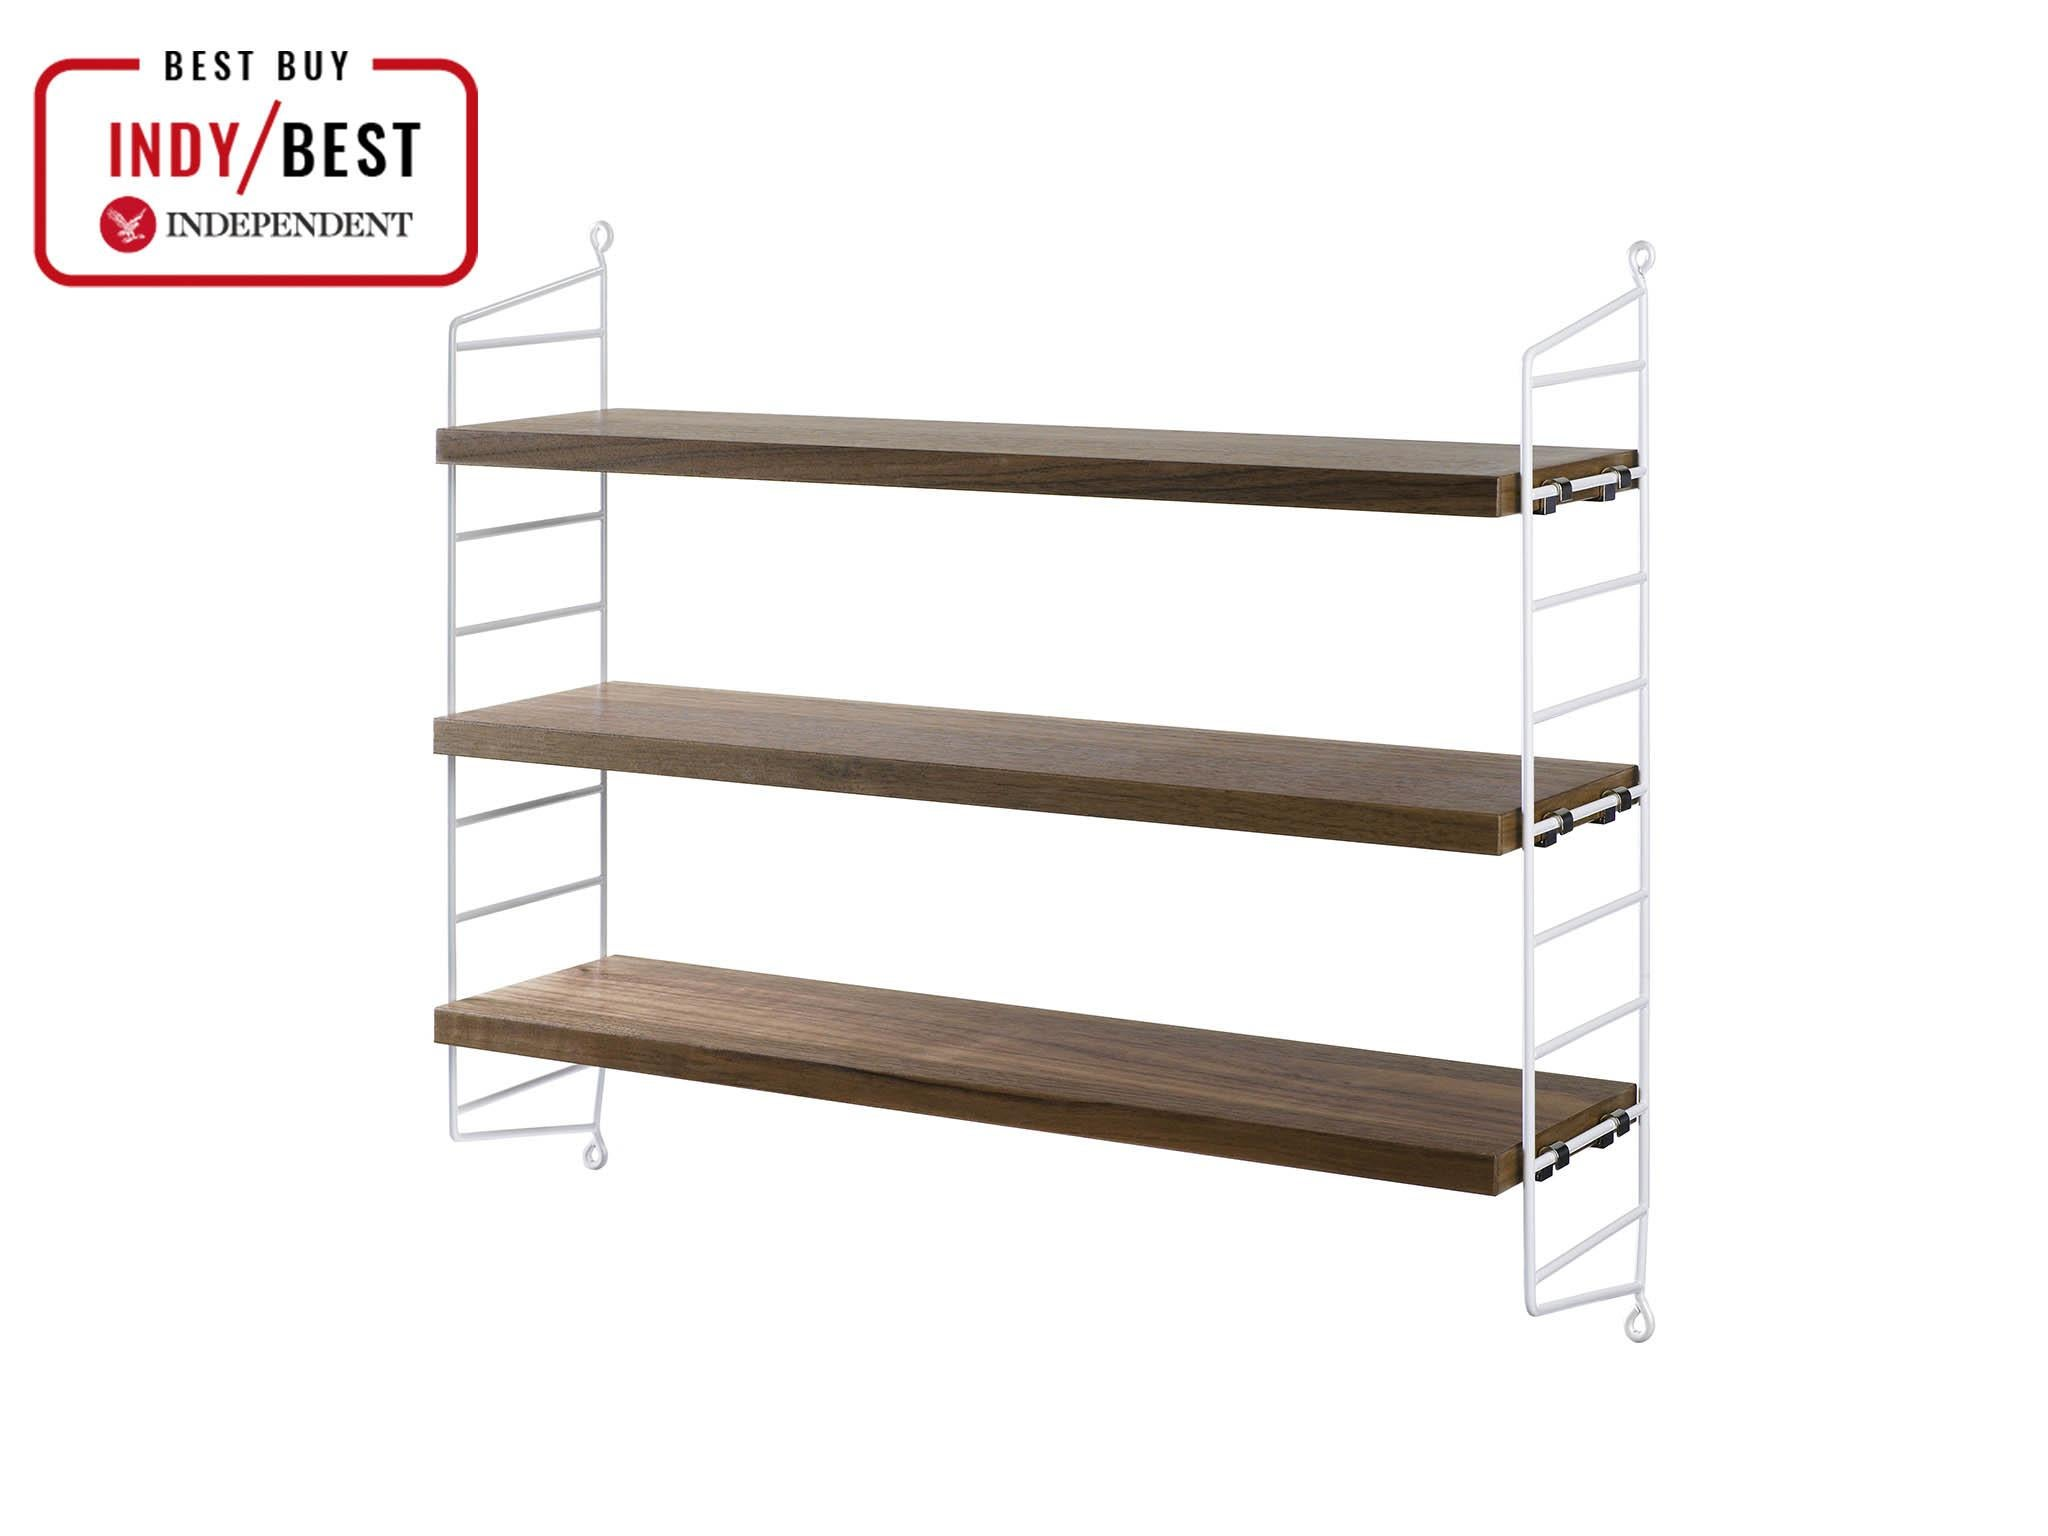 10 Best Wall Shelves The Independent